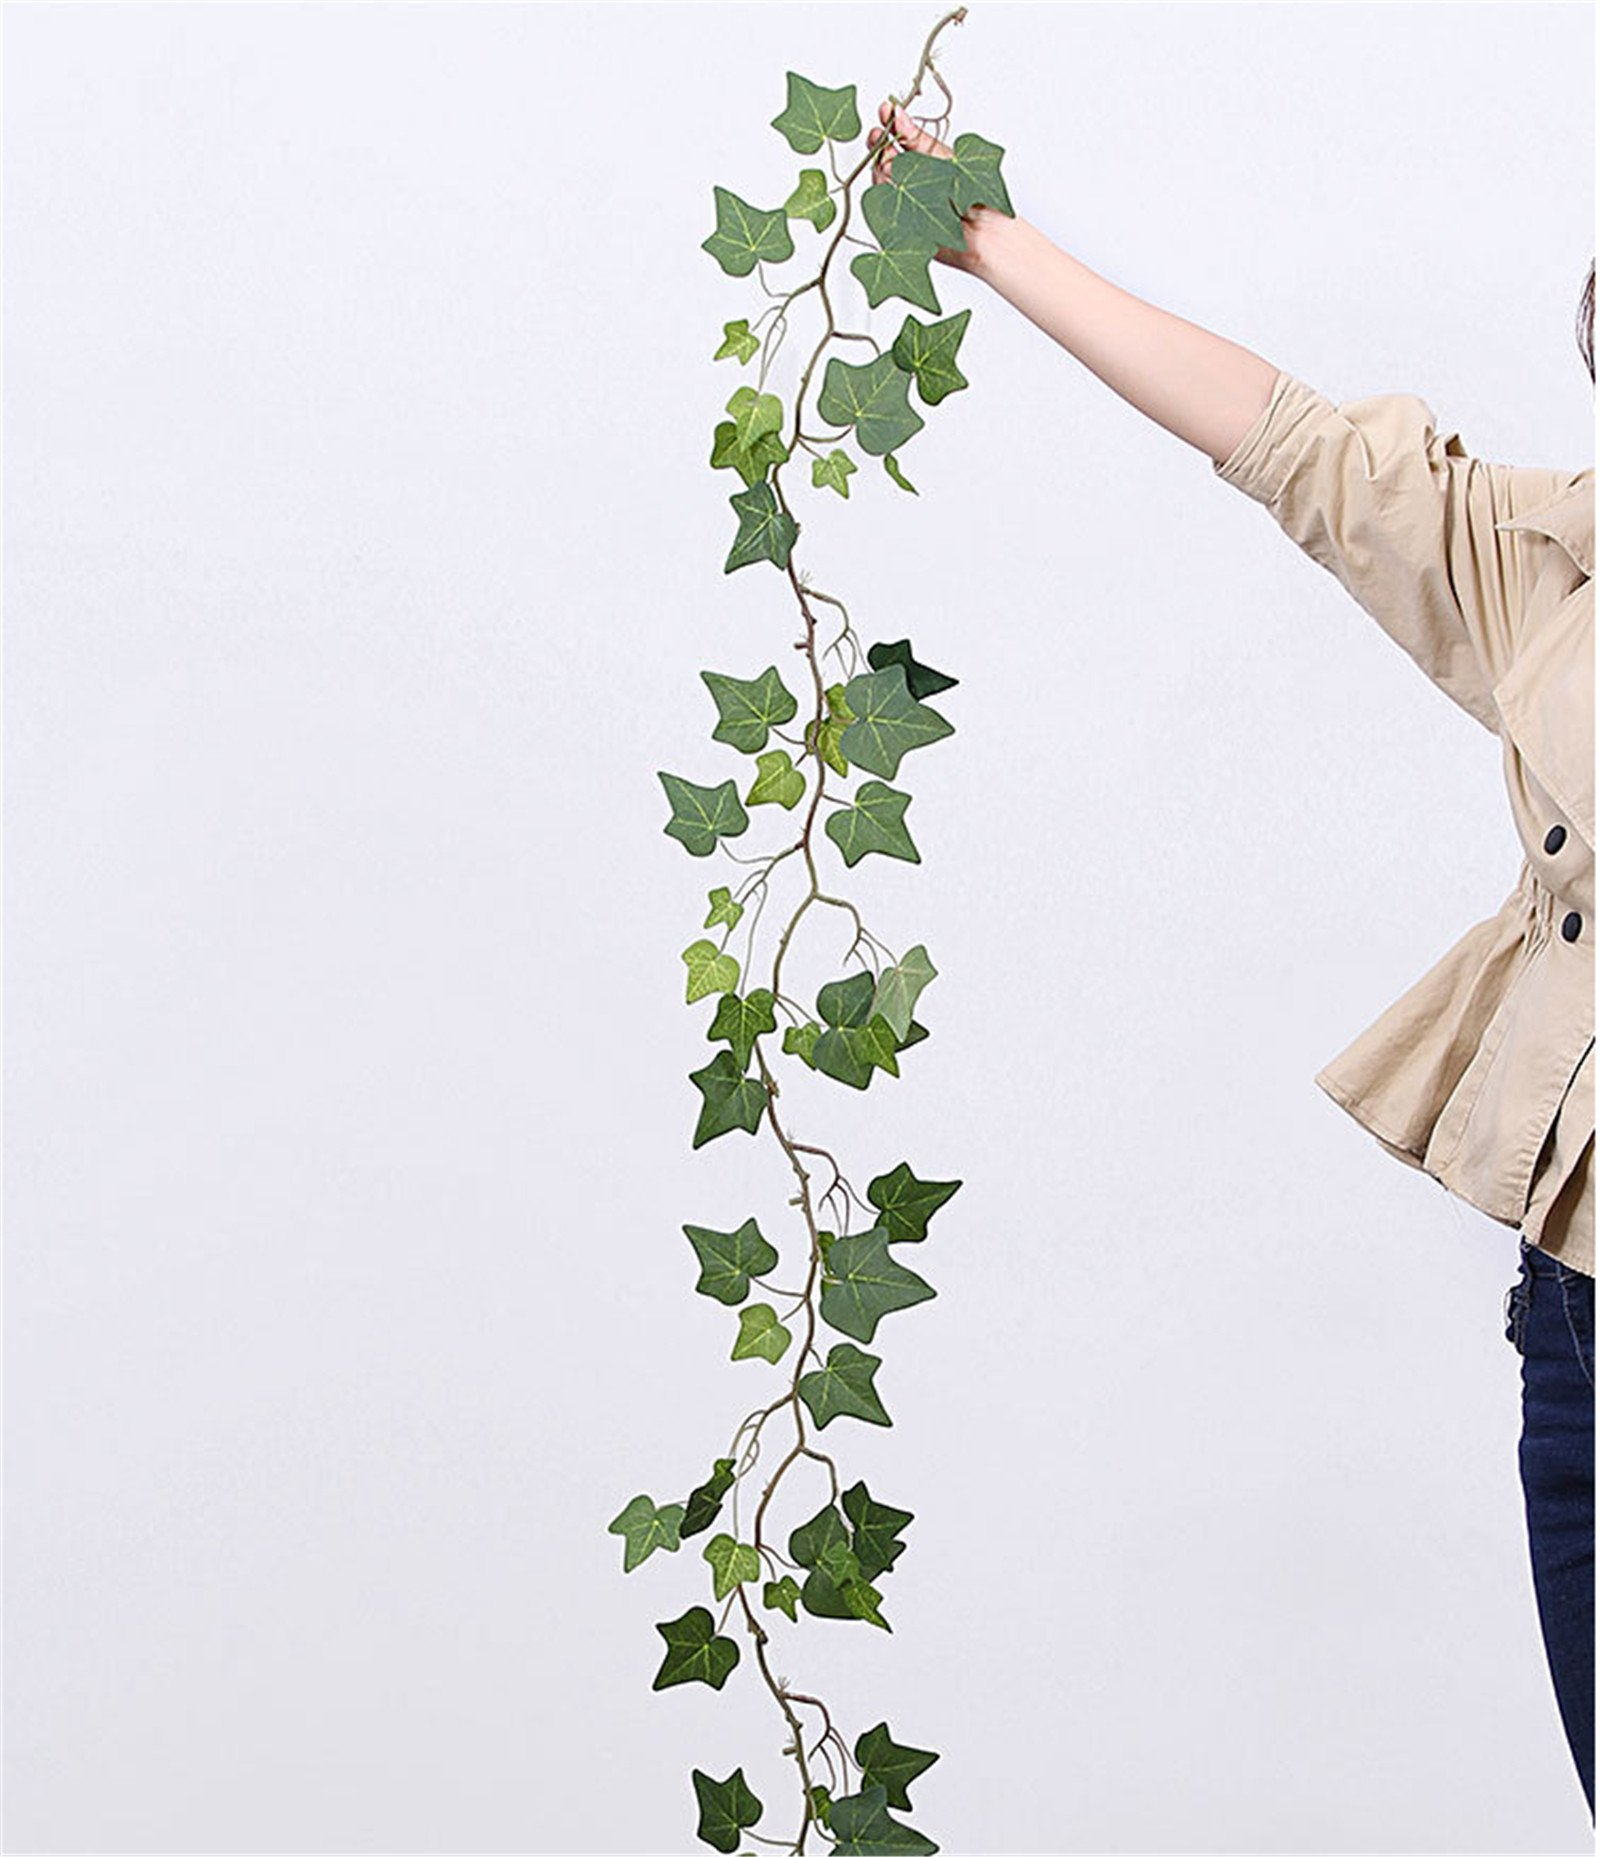 Zzooi Natural-Looking Artificial Vine,Climbing Plant,Vines Plants,Ivy Leaf,Ficus Tikoua,Suitable for:Wedding,Party,Wall,Doors,Swing,Mirrors and Anywhere You Like.(3PCS in Total)